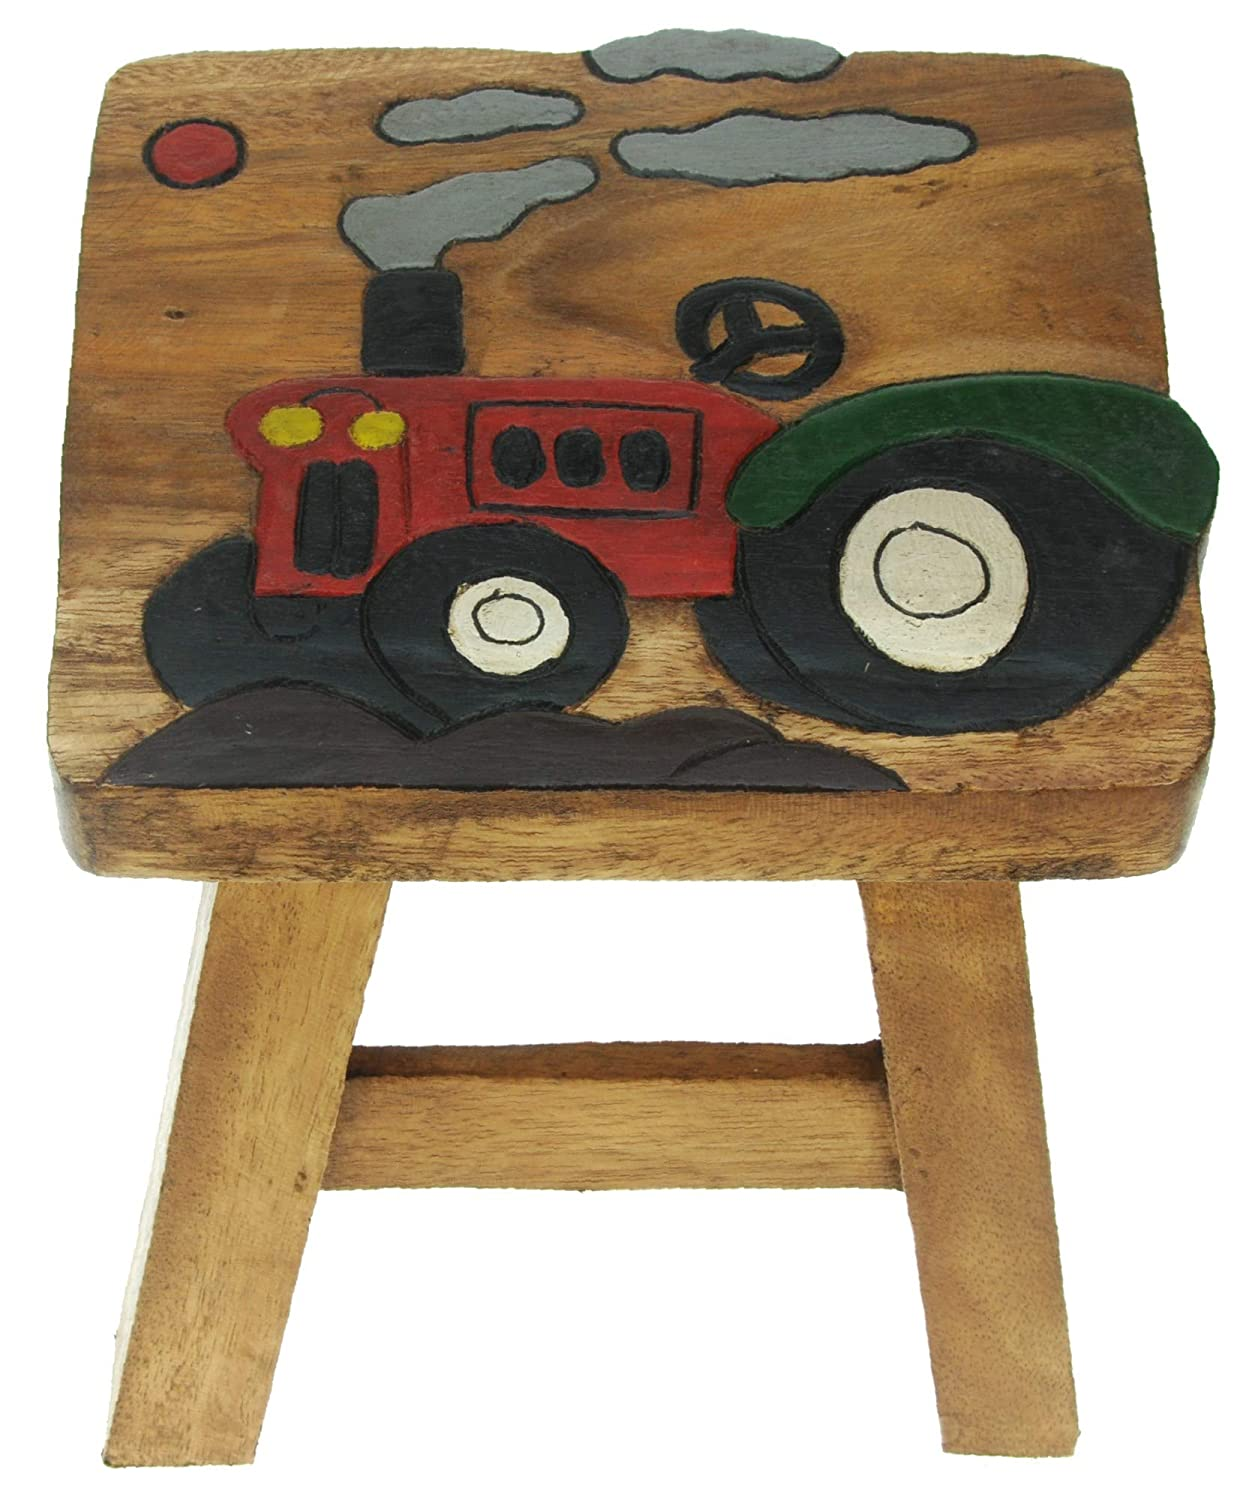 Namesakes Childrens Wooden stool - Tractor - Fun for kids - Handcrafted from Wood - Present for Boys or Girls All My Gift Ideas